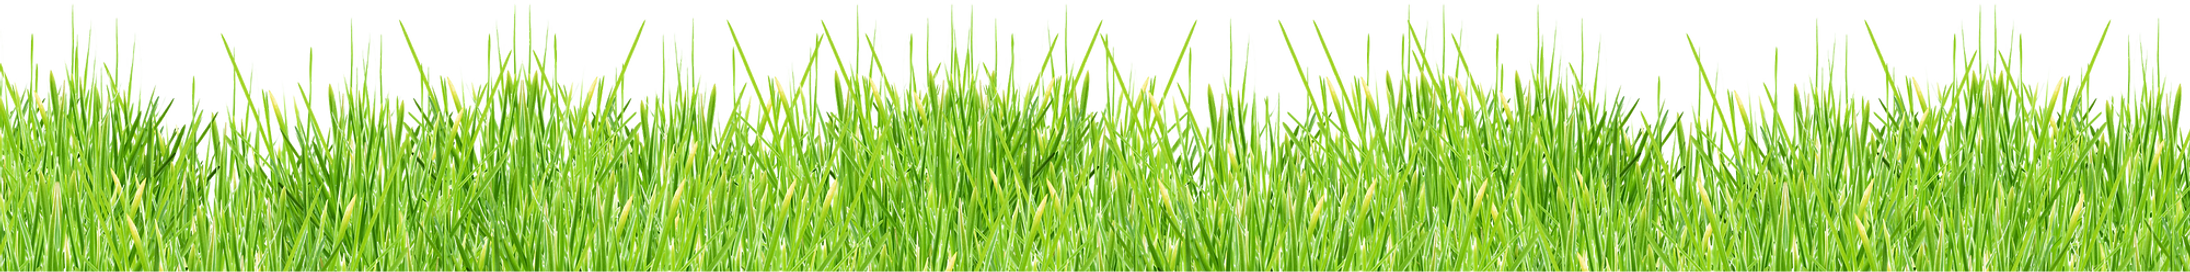 grass_PNG393.png